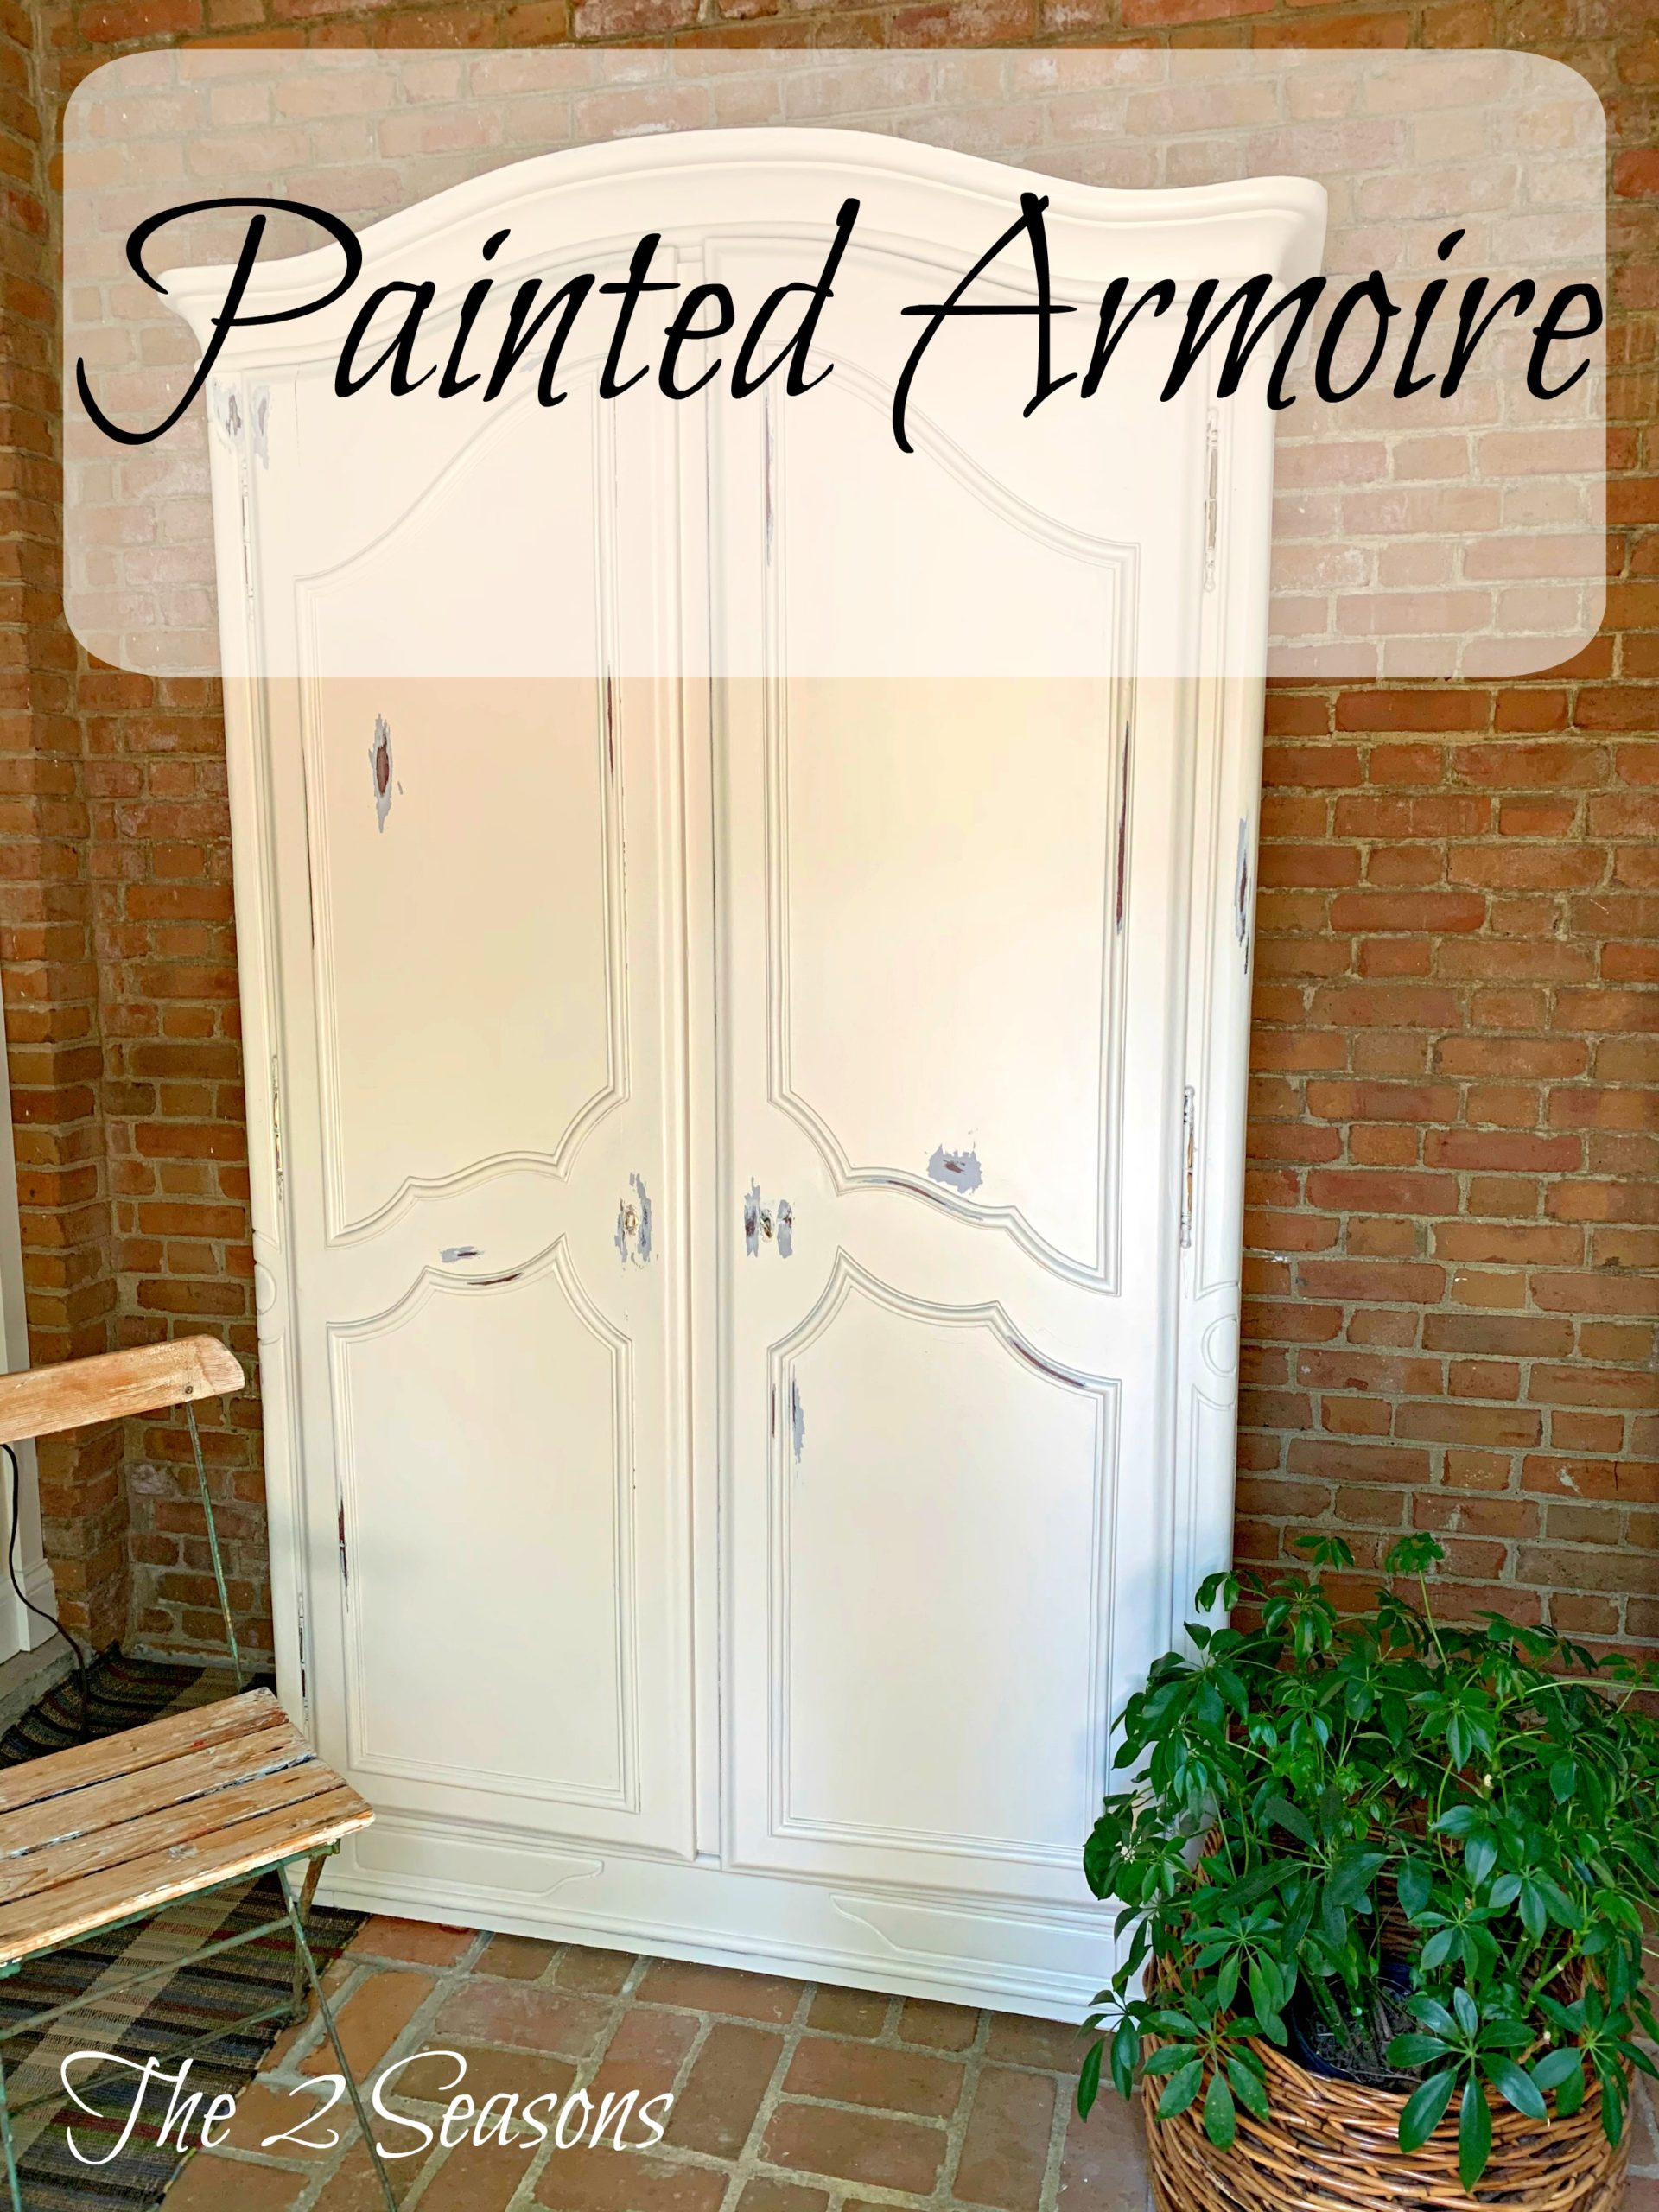 Painted armoire 1 1 scaled - I Painted the Armoire